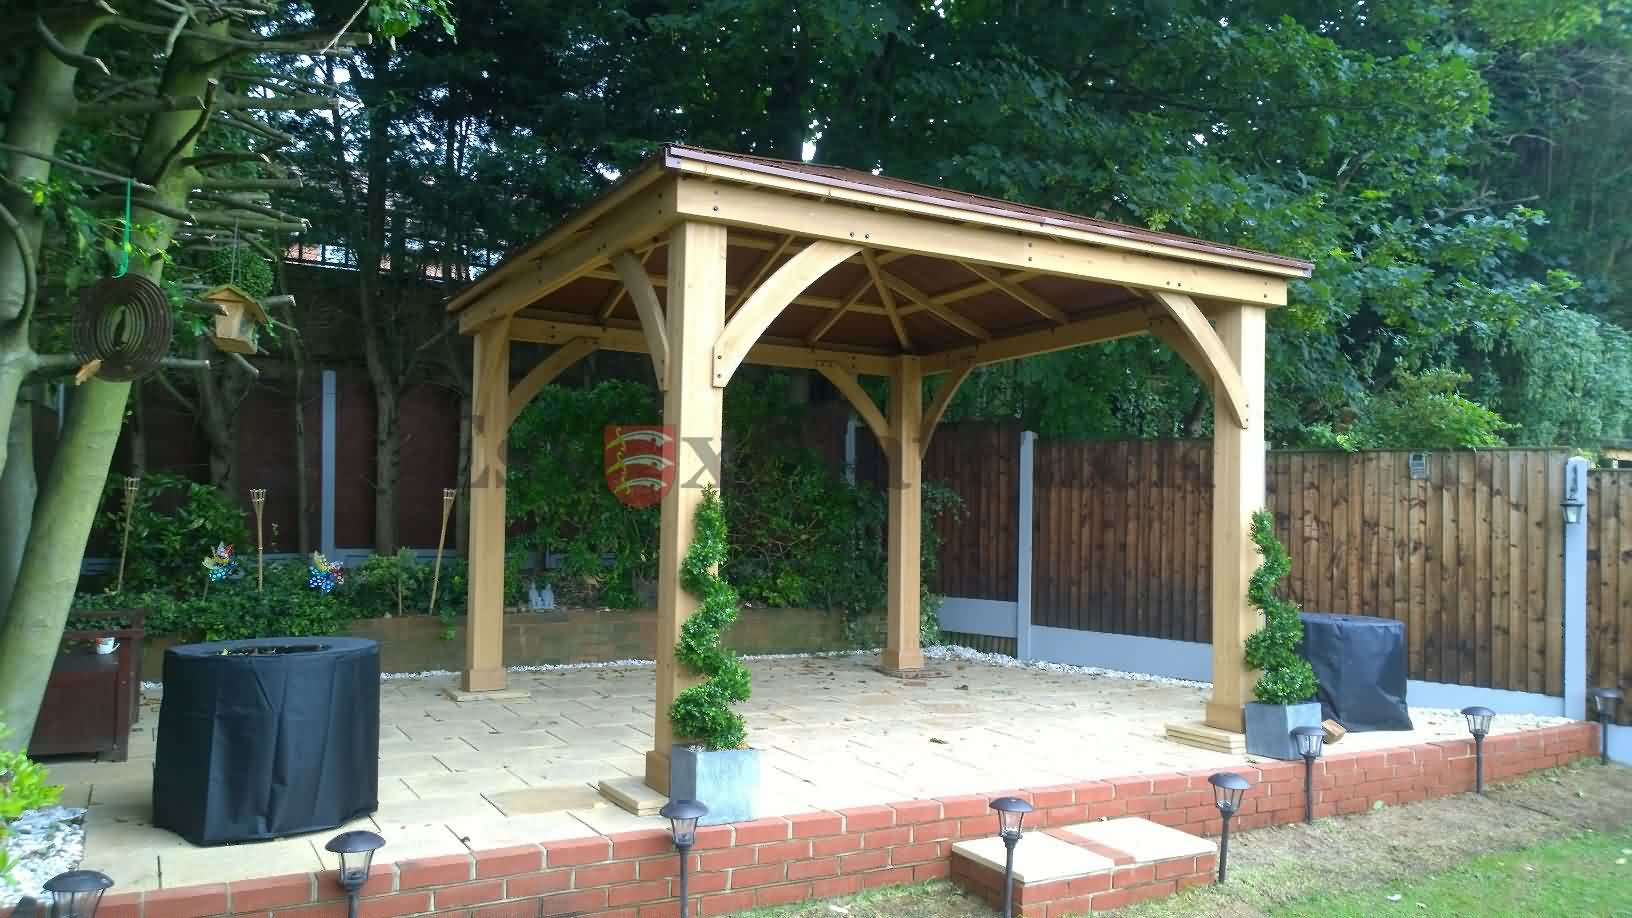 shed-installation-and-assembly-service-83.jpg